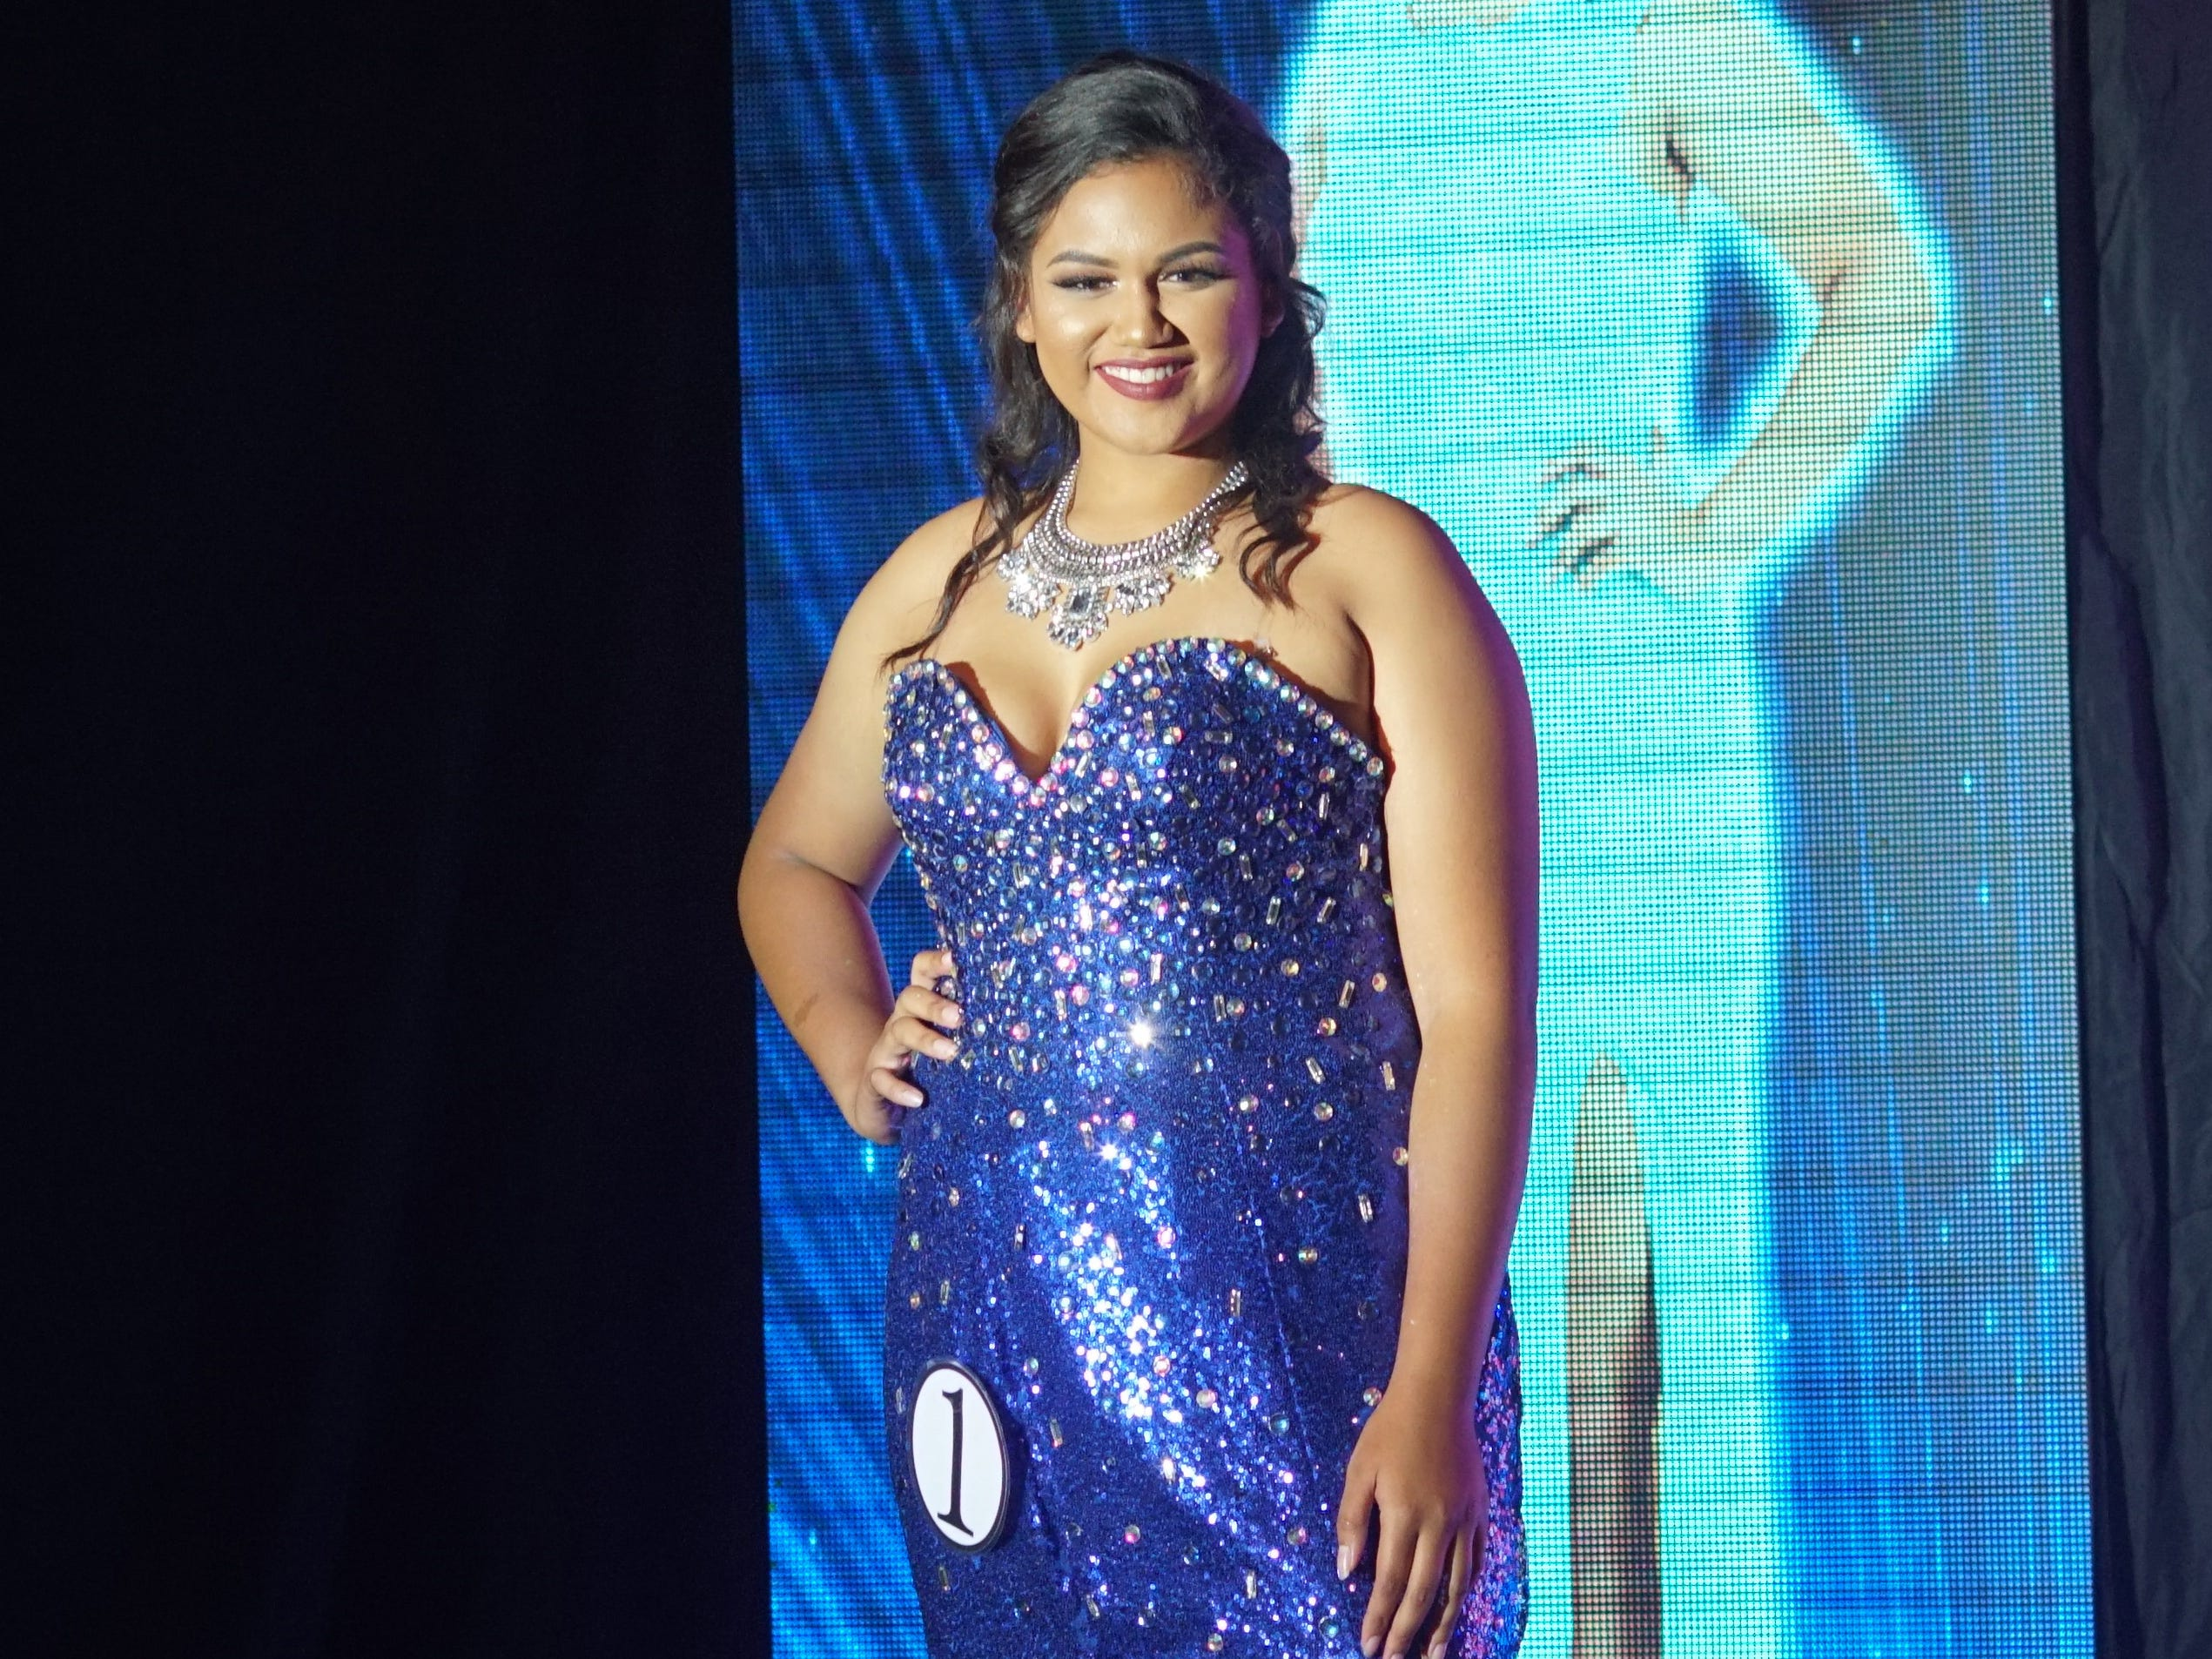 Contestant #1, Joleen Rankin, 18, from Sinajana, wearing  her evening gown during the Miss World Guam Pageant which was held at Sheraton Laguna Guam Resort.